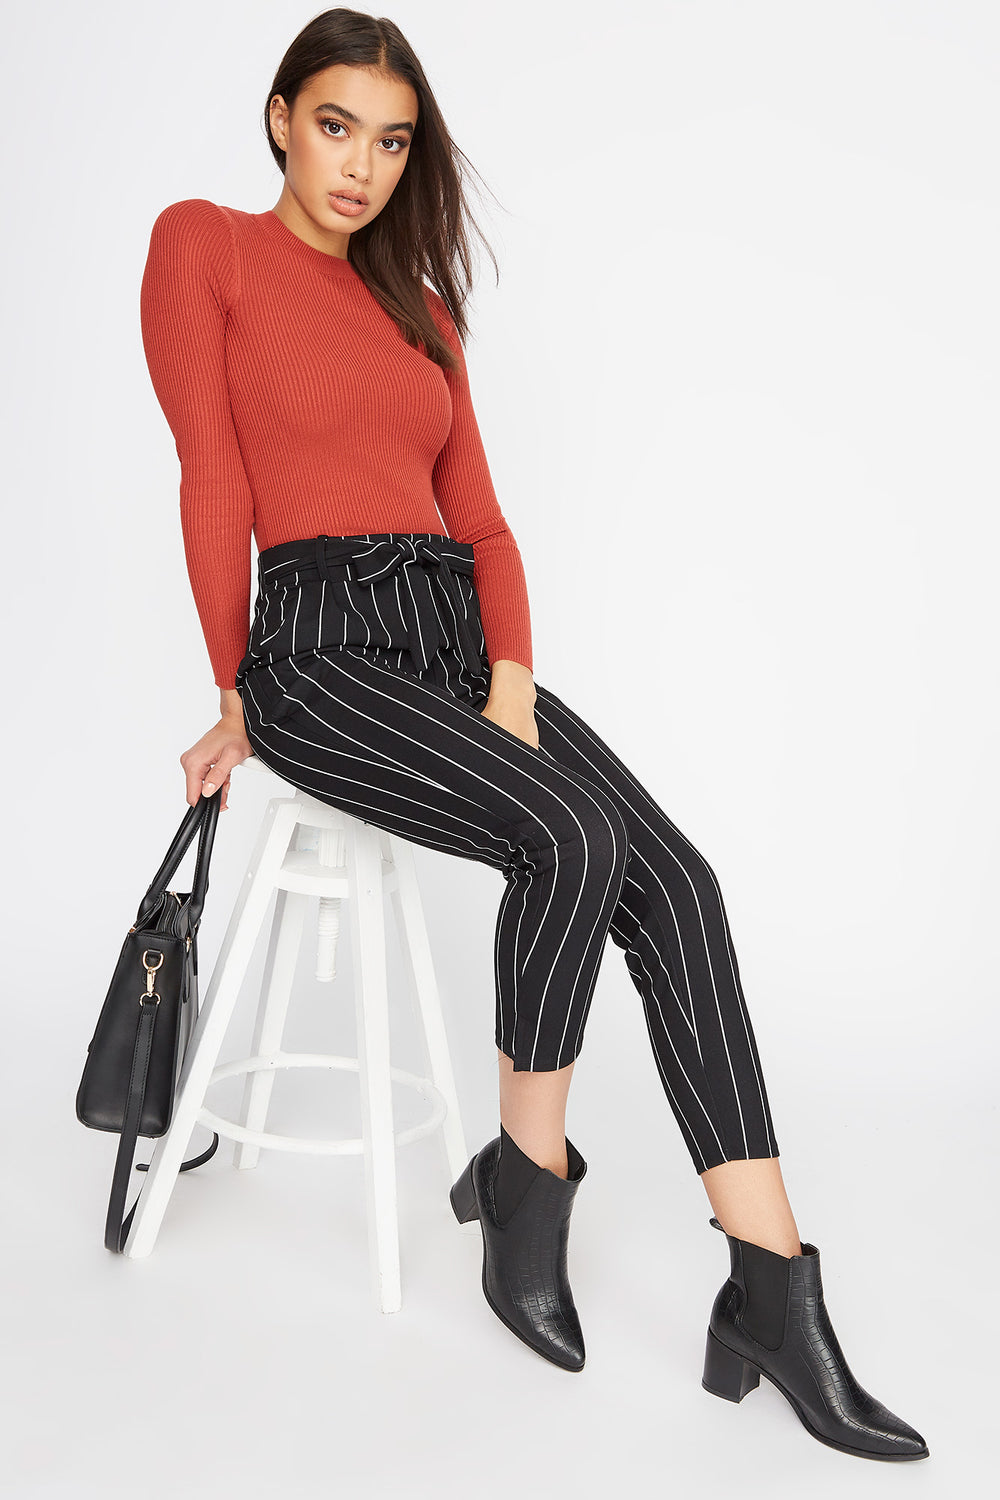 Front Tie Pant Black With White